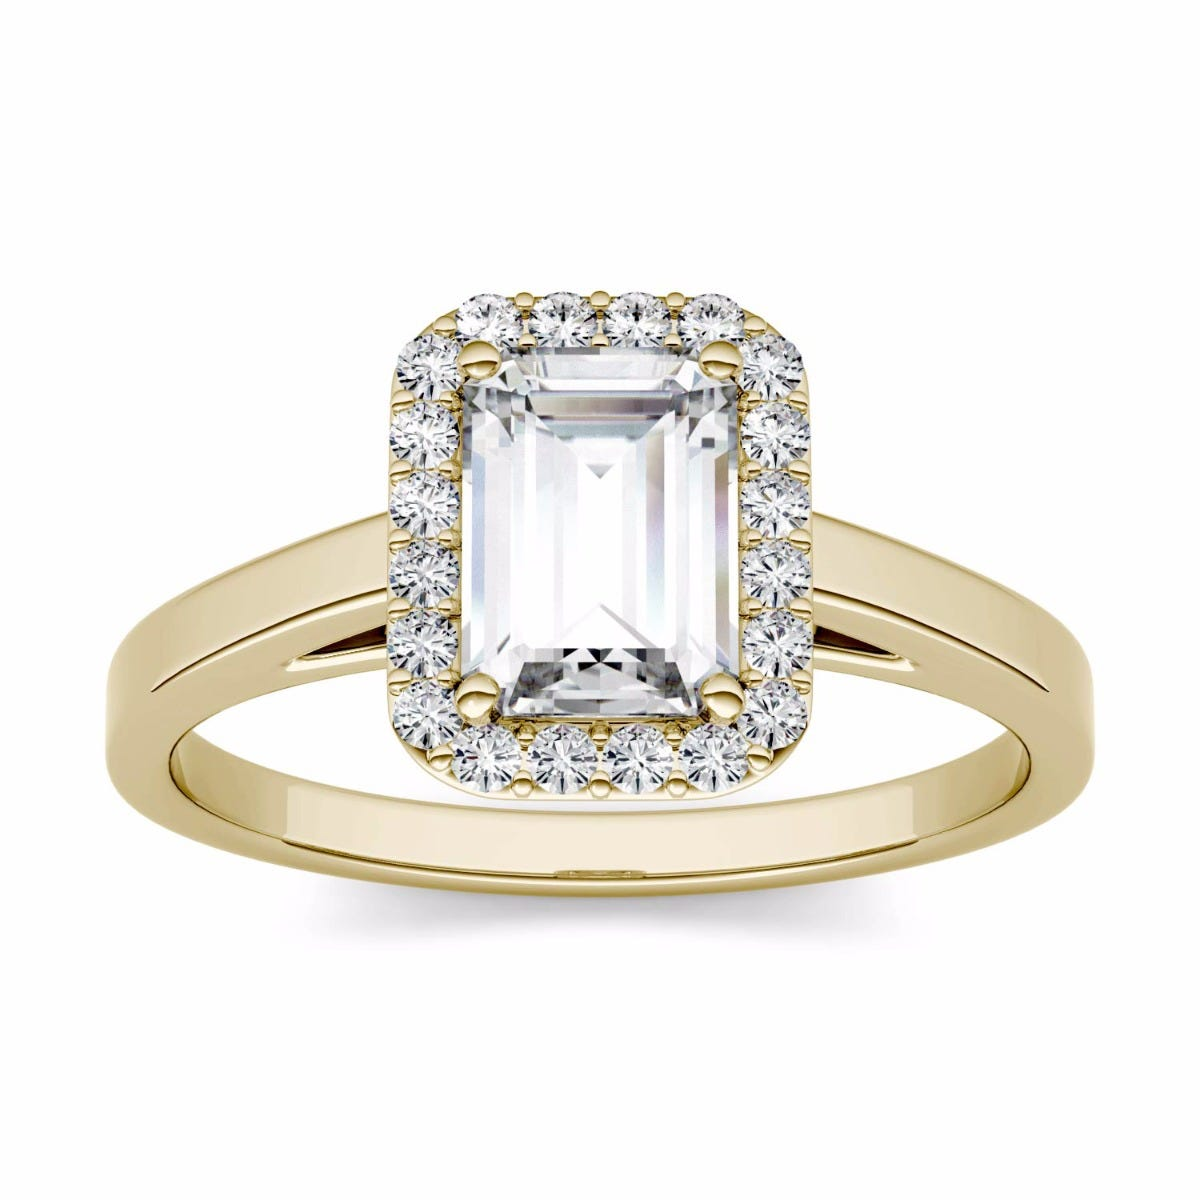 Emerald 2.4716cttw DEW Moissanite Halo Engagement Ring in 14K Yellow Gold 525081